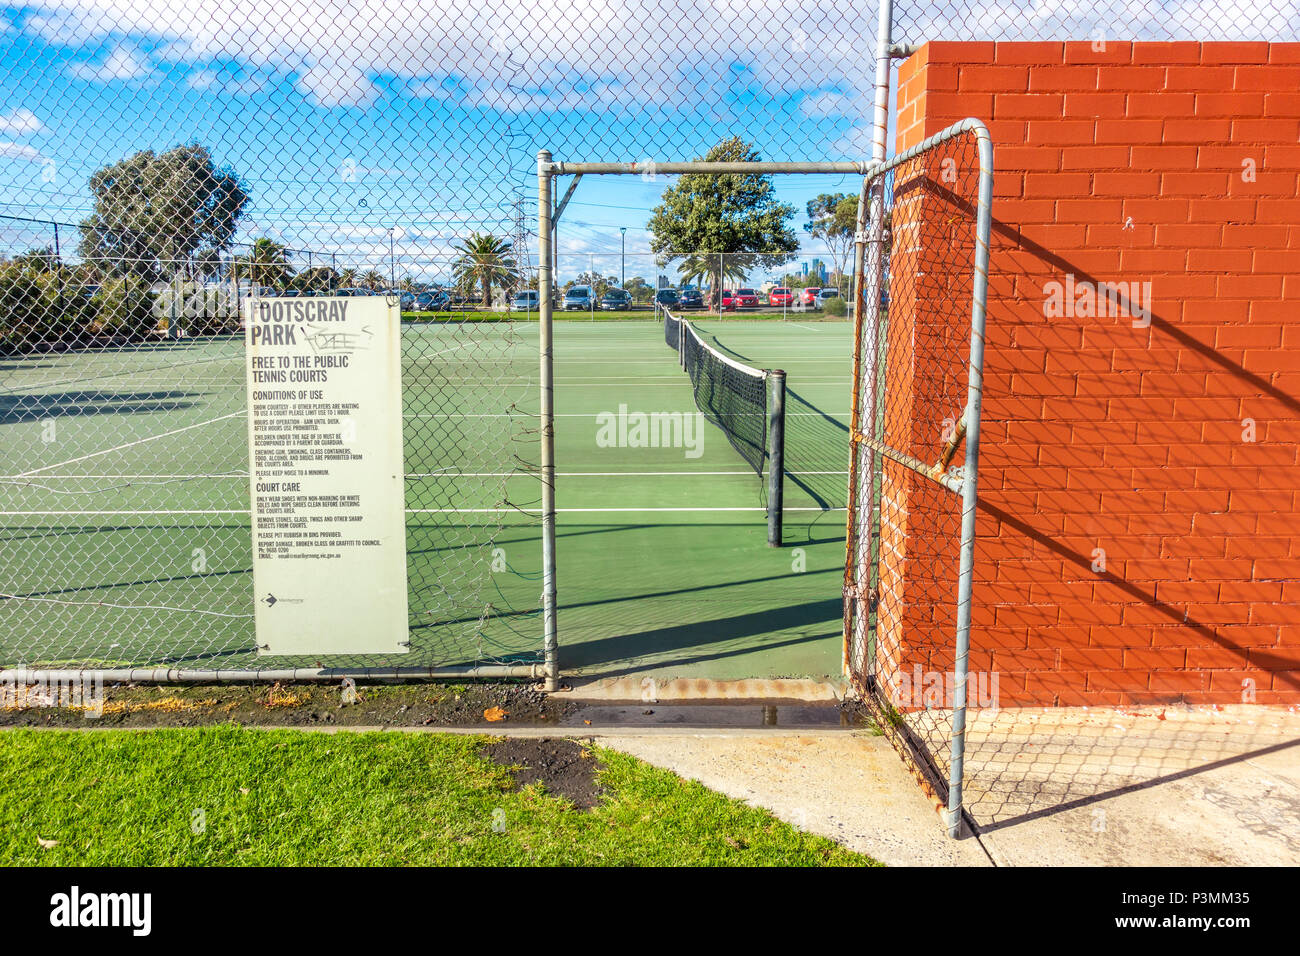 Entrance of free tennis court in Footscray Park. Melbourne, VIC Australia - Stock Image